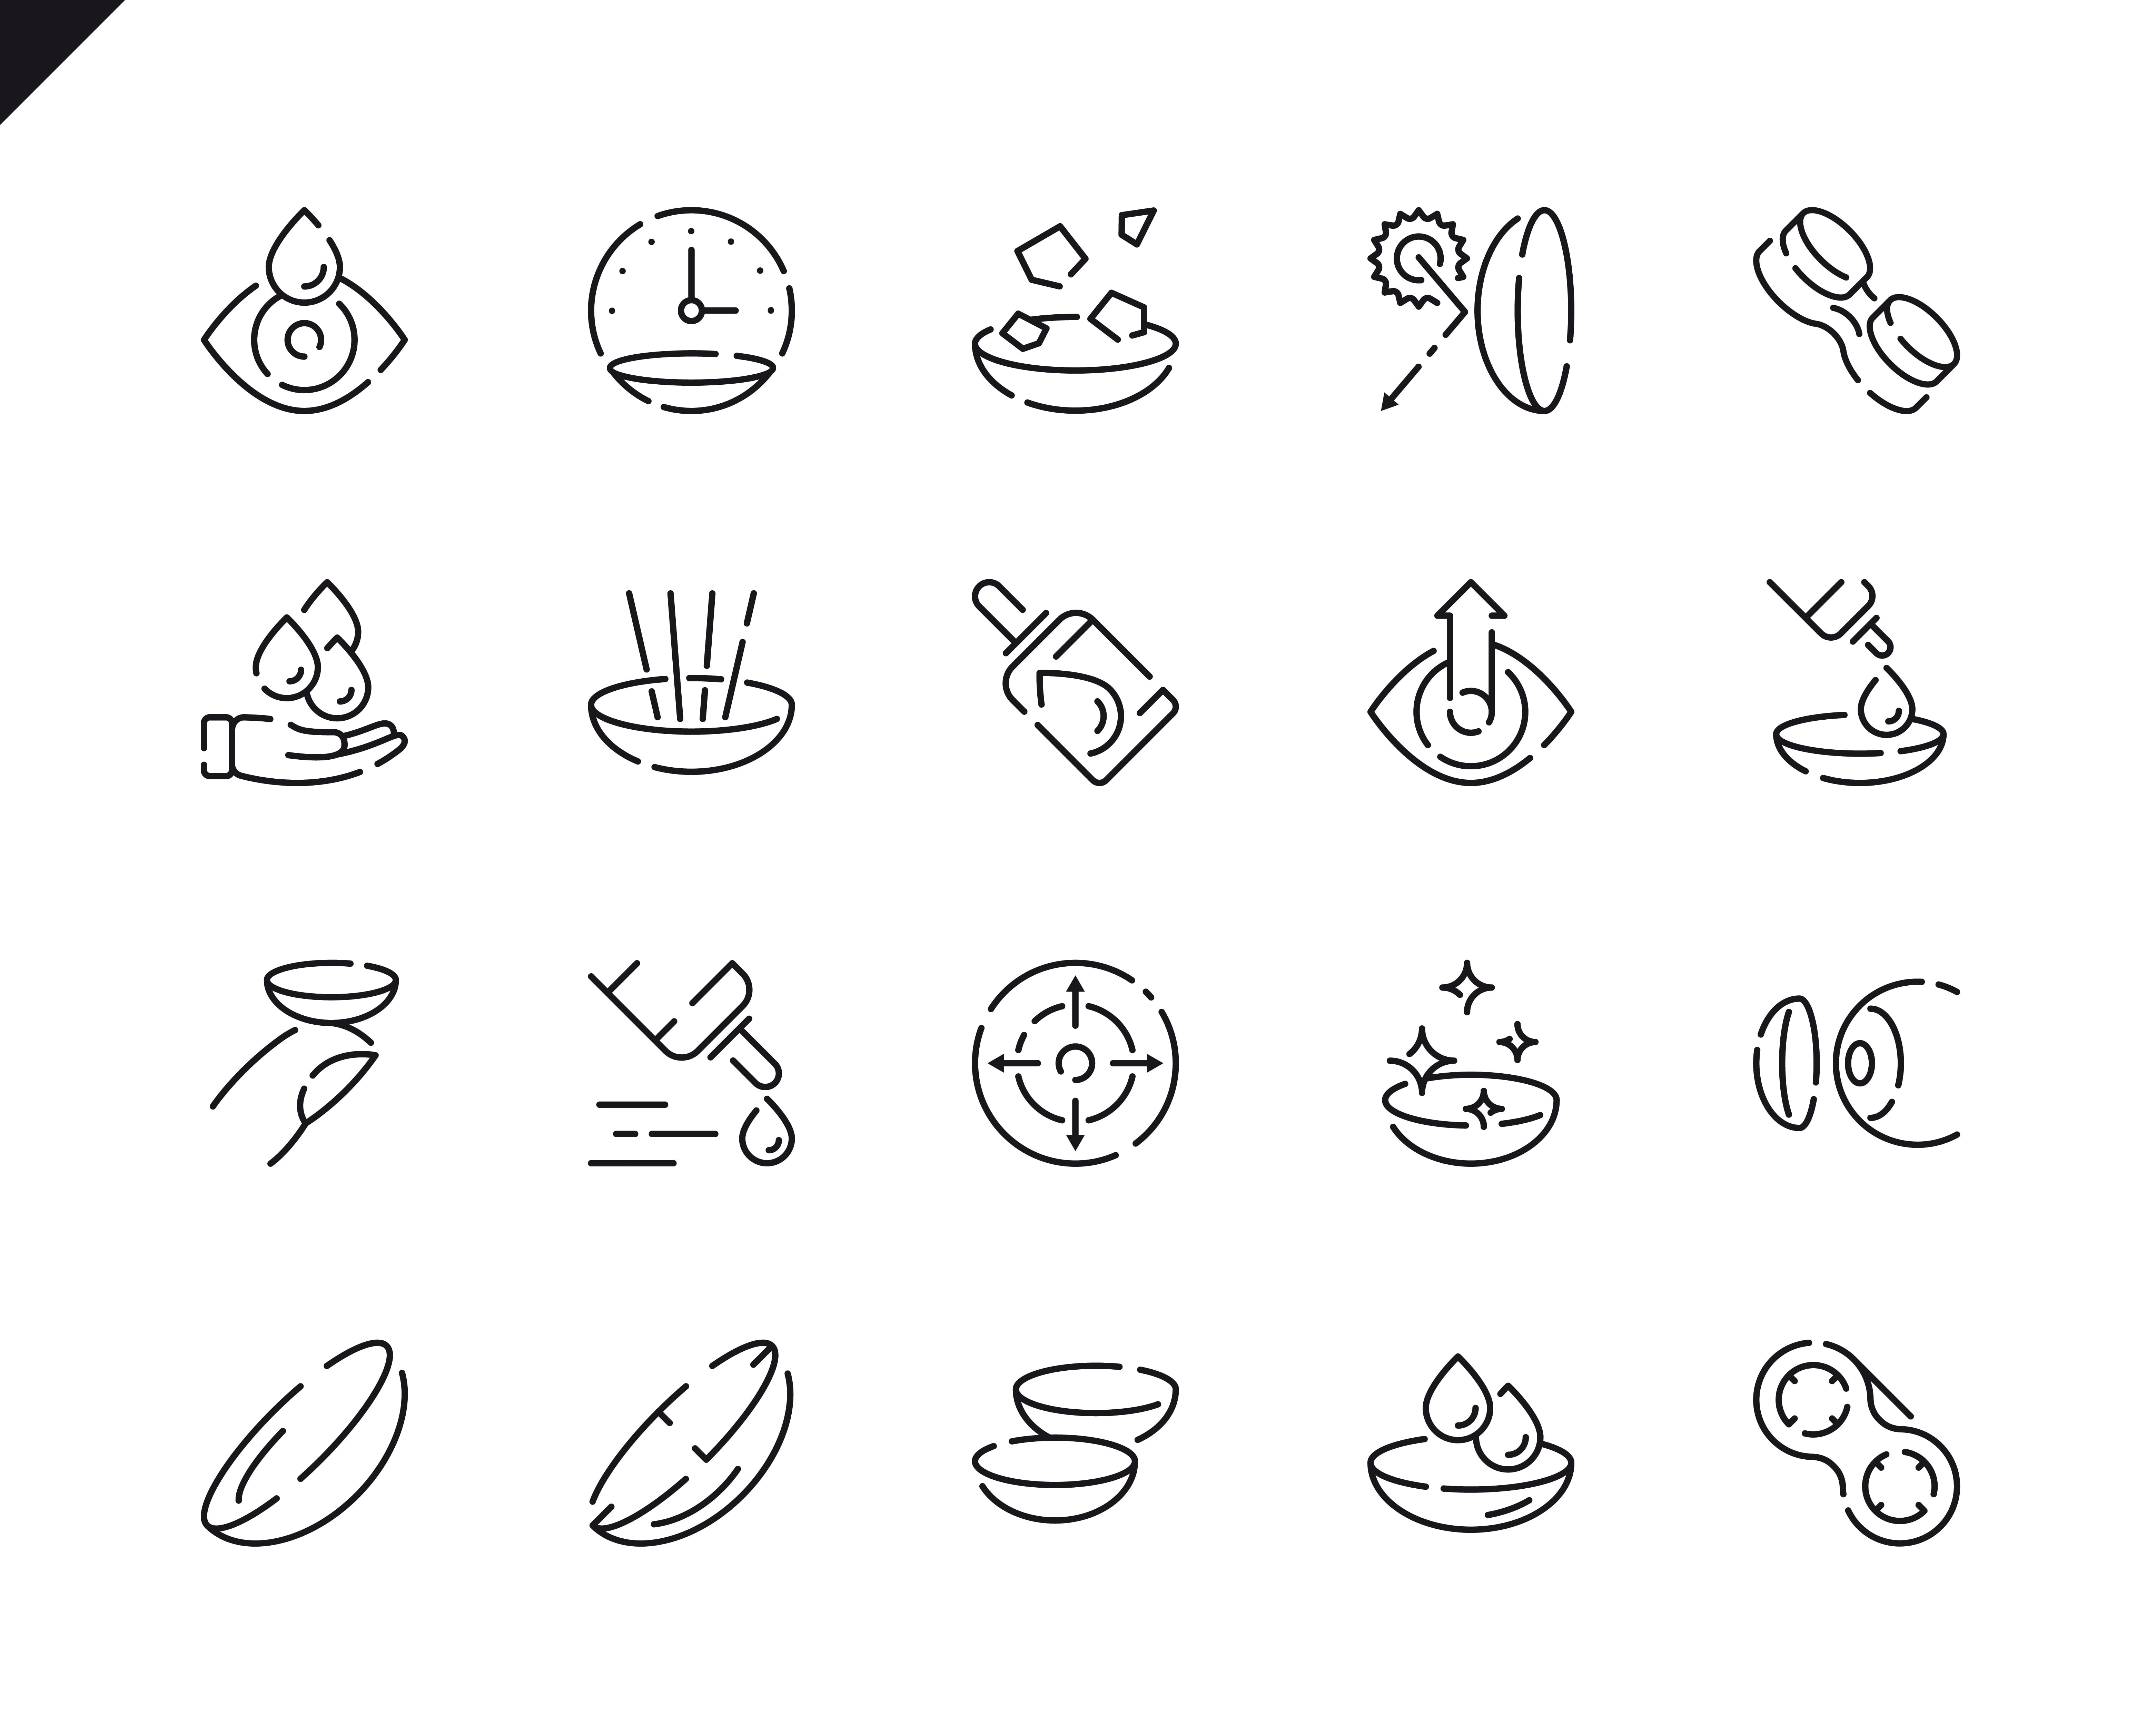 500 Business Line Icons - $22 ONLY - 20 3